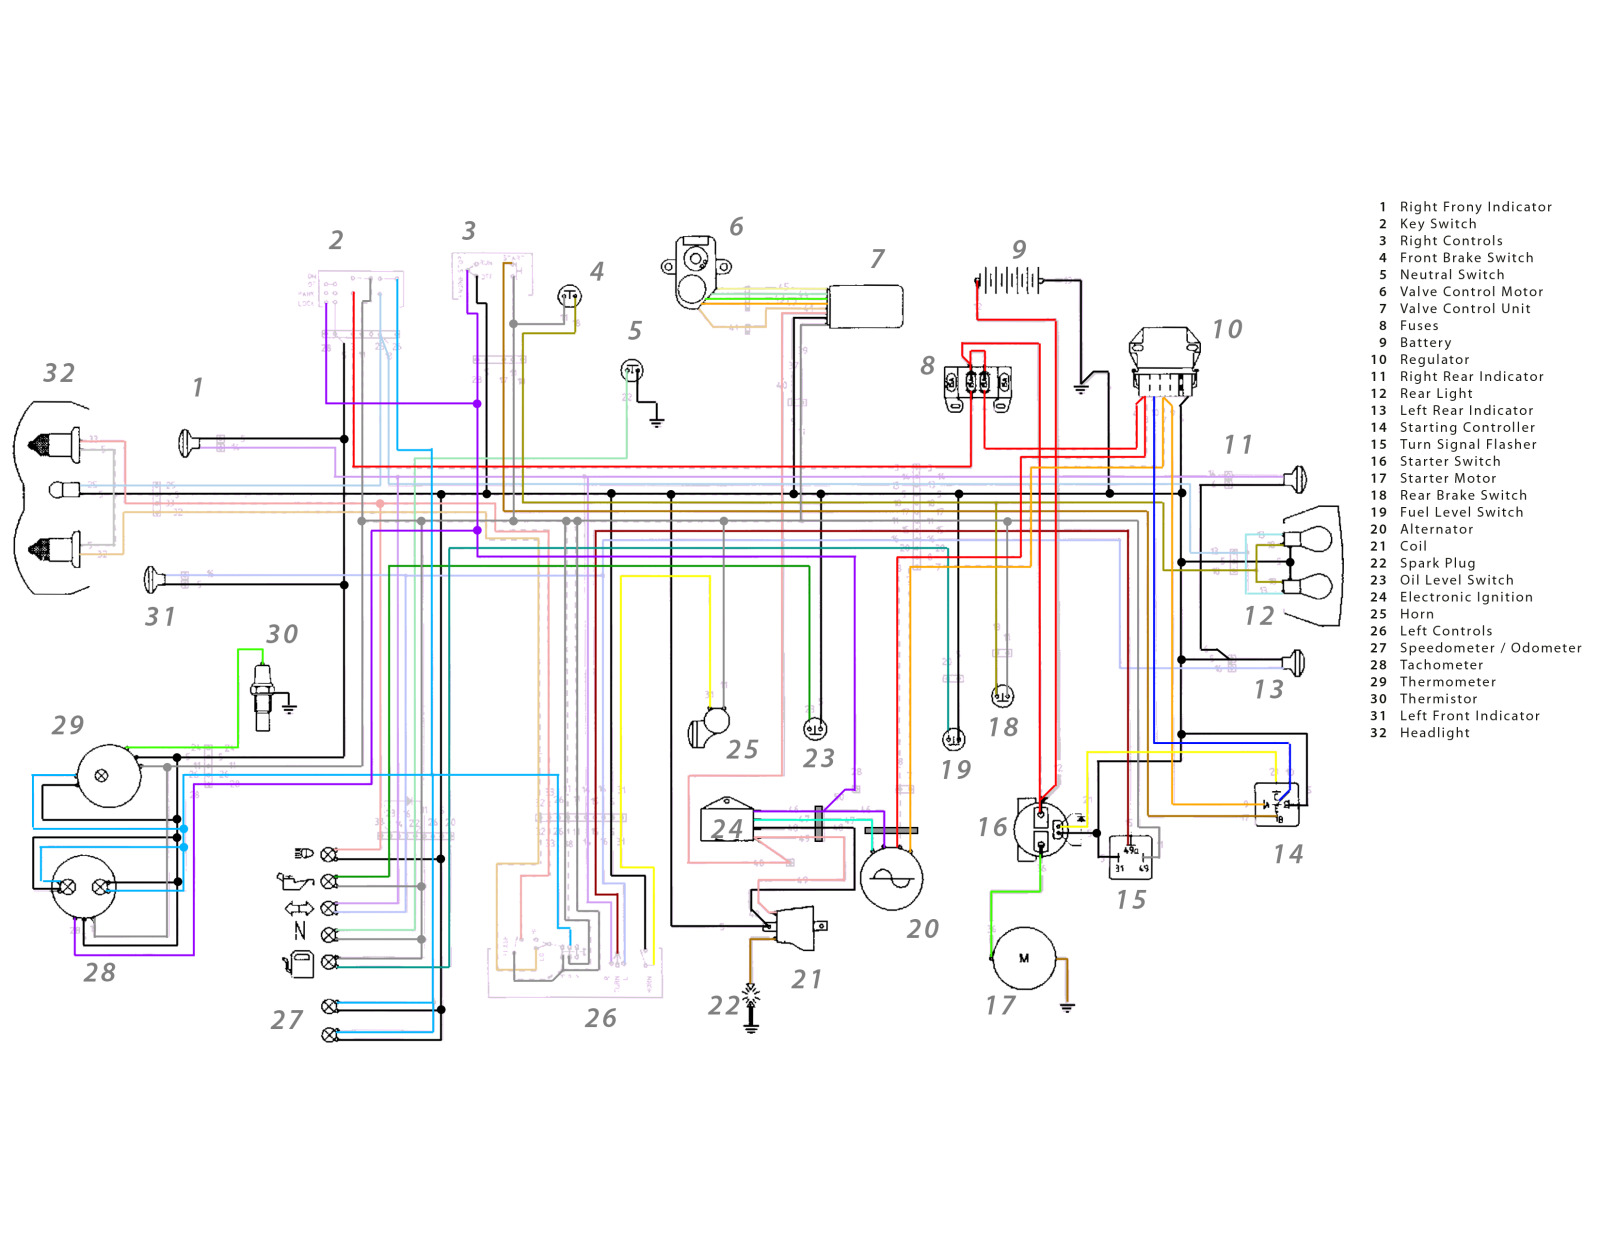 Wire Diagram Wiring Schematic Cagiva Mito 125 Cagiva Mito 125 Wiring Diagrams